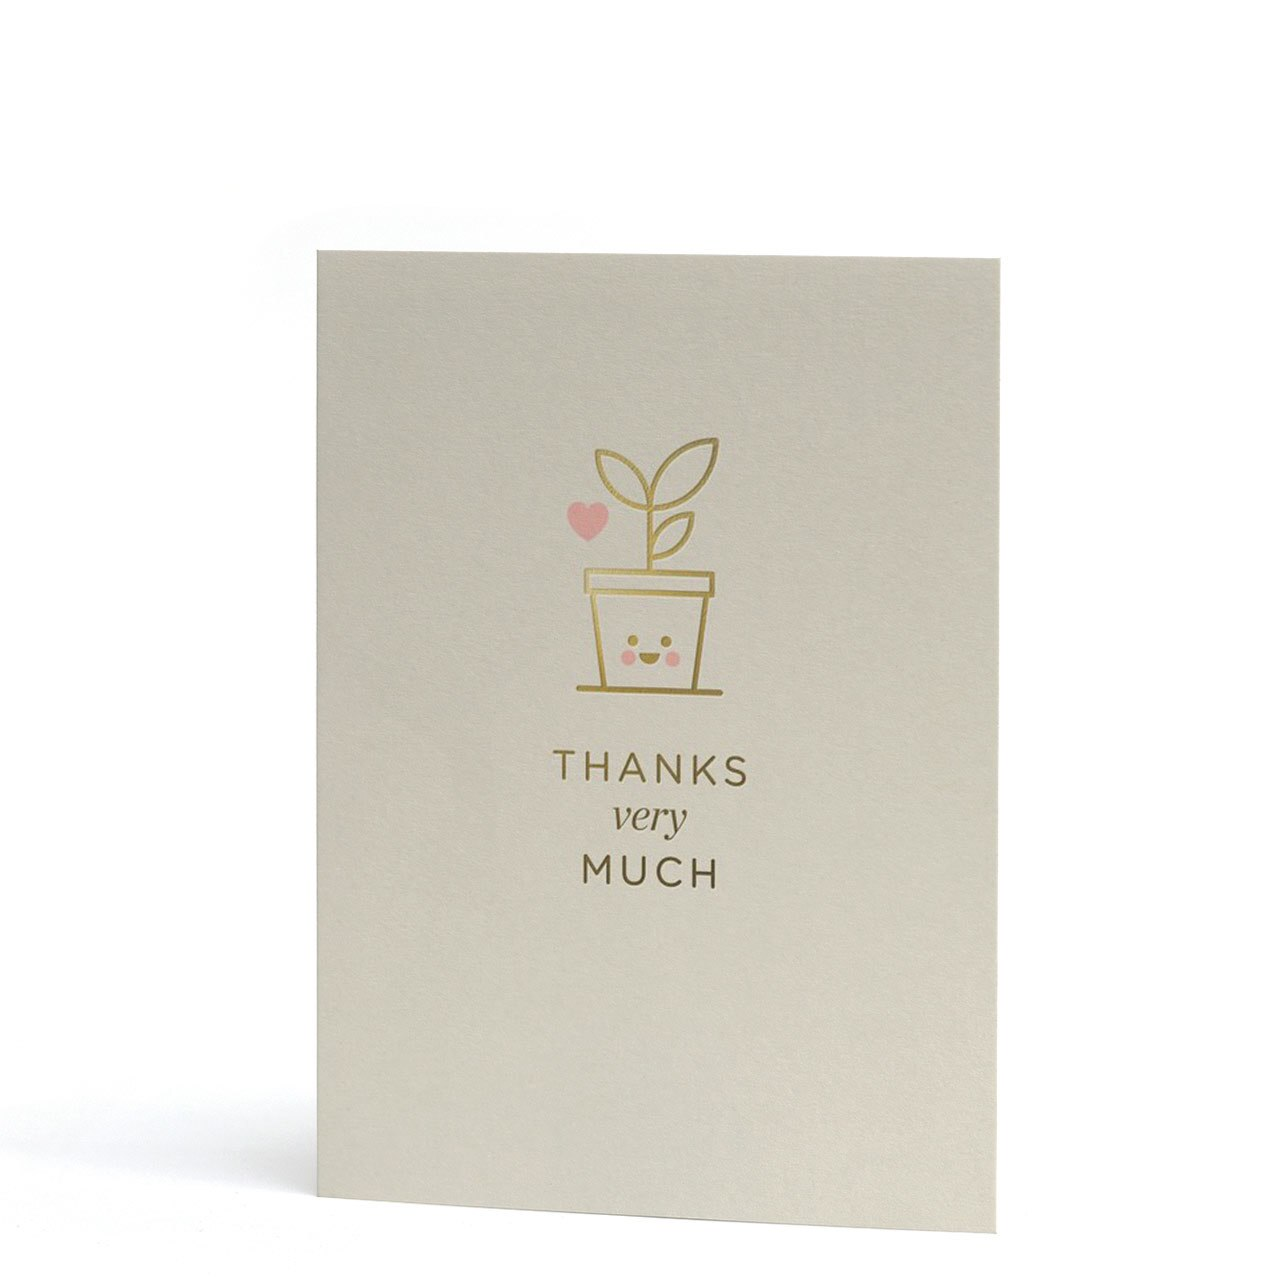 Thanks Very Much Mini Gold Foil Greeting Card